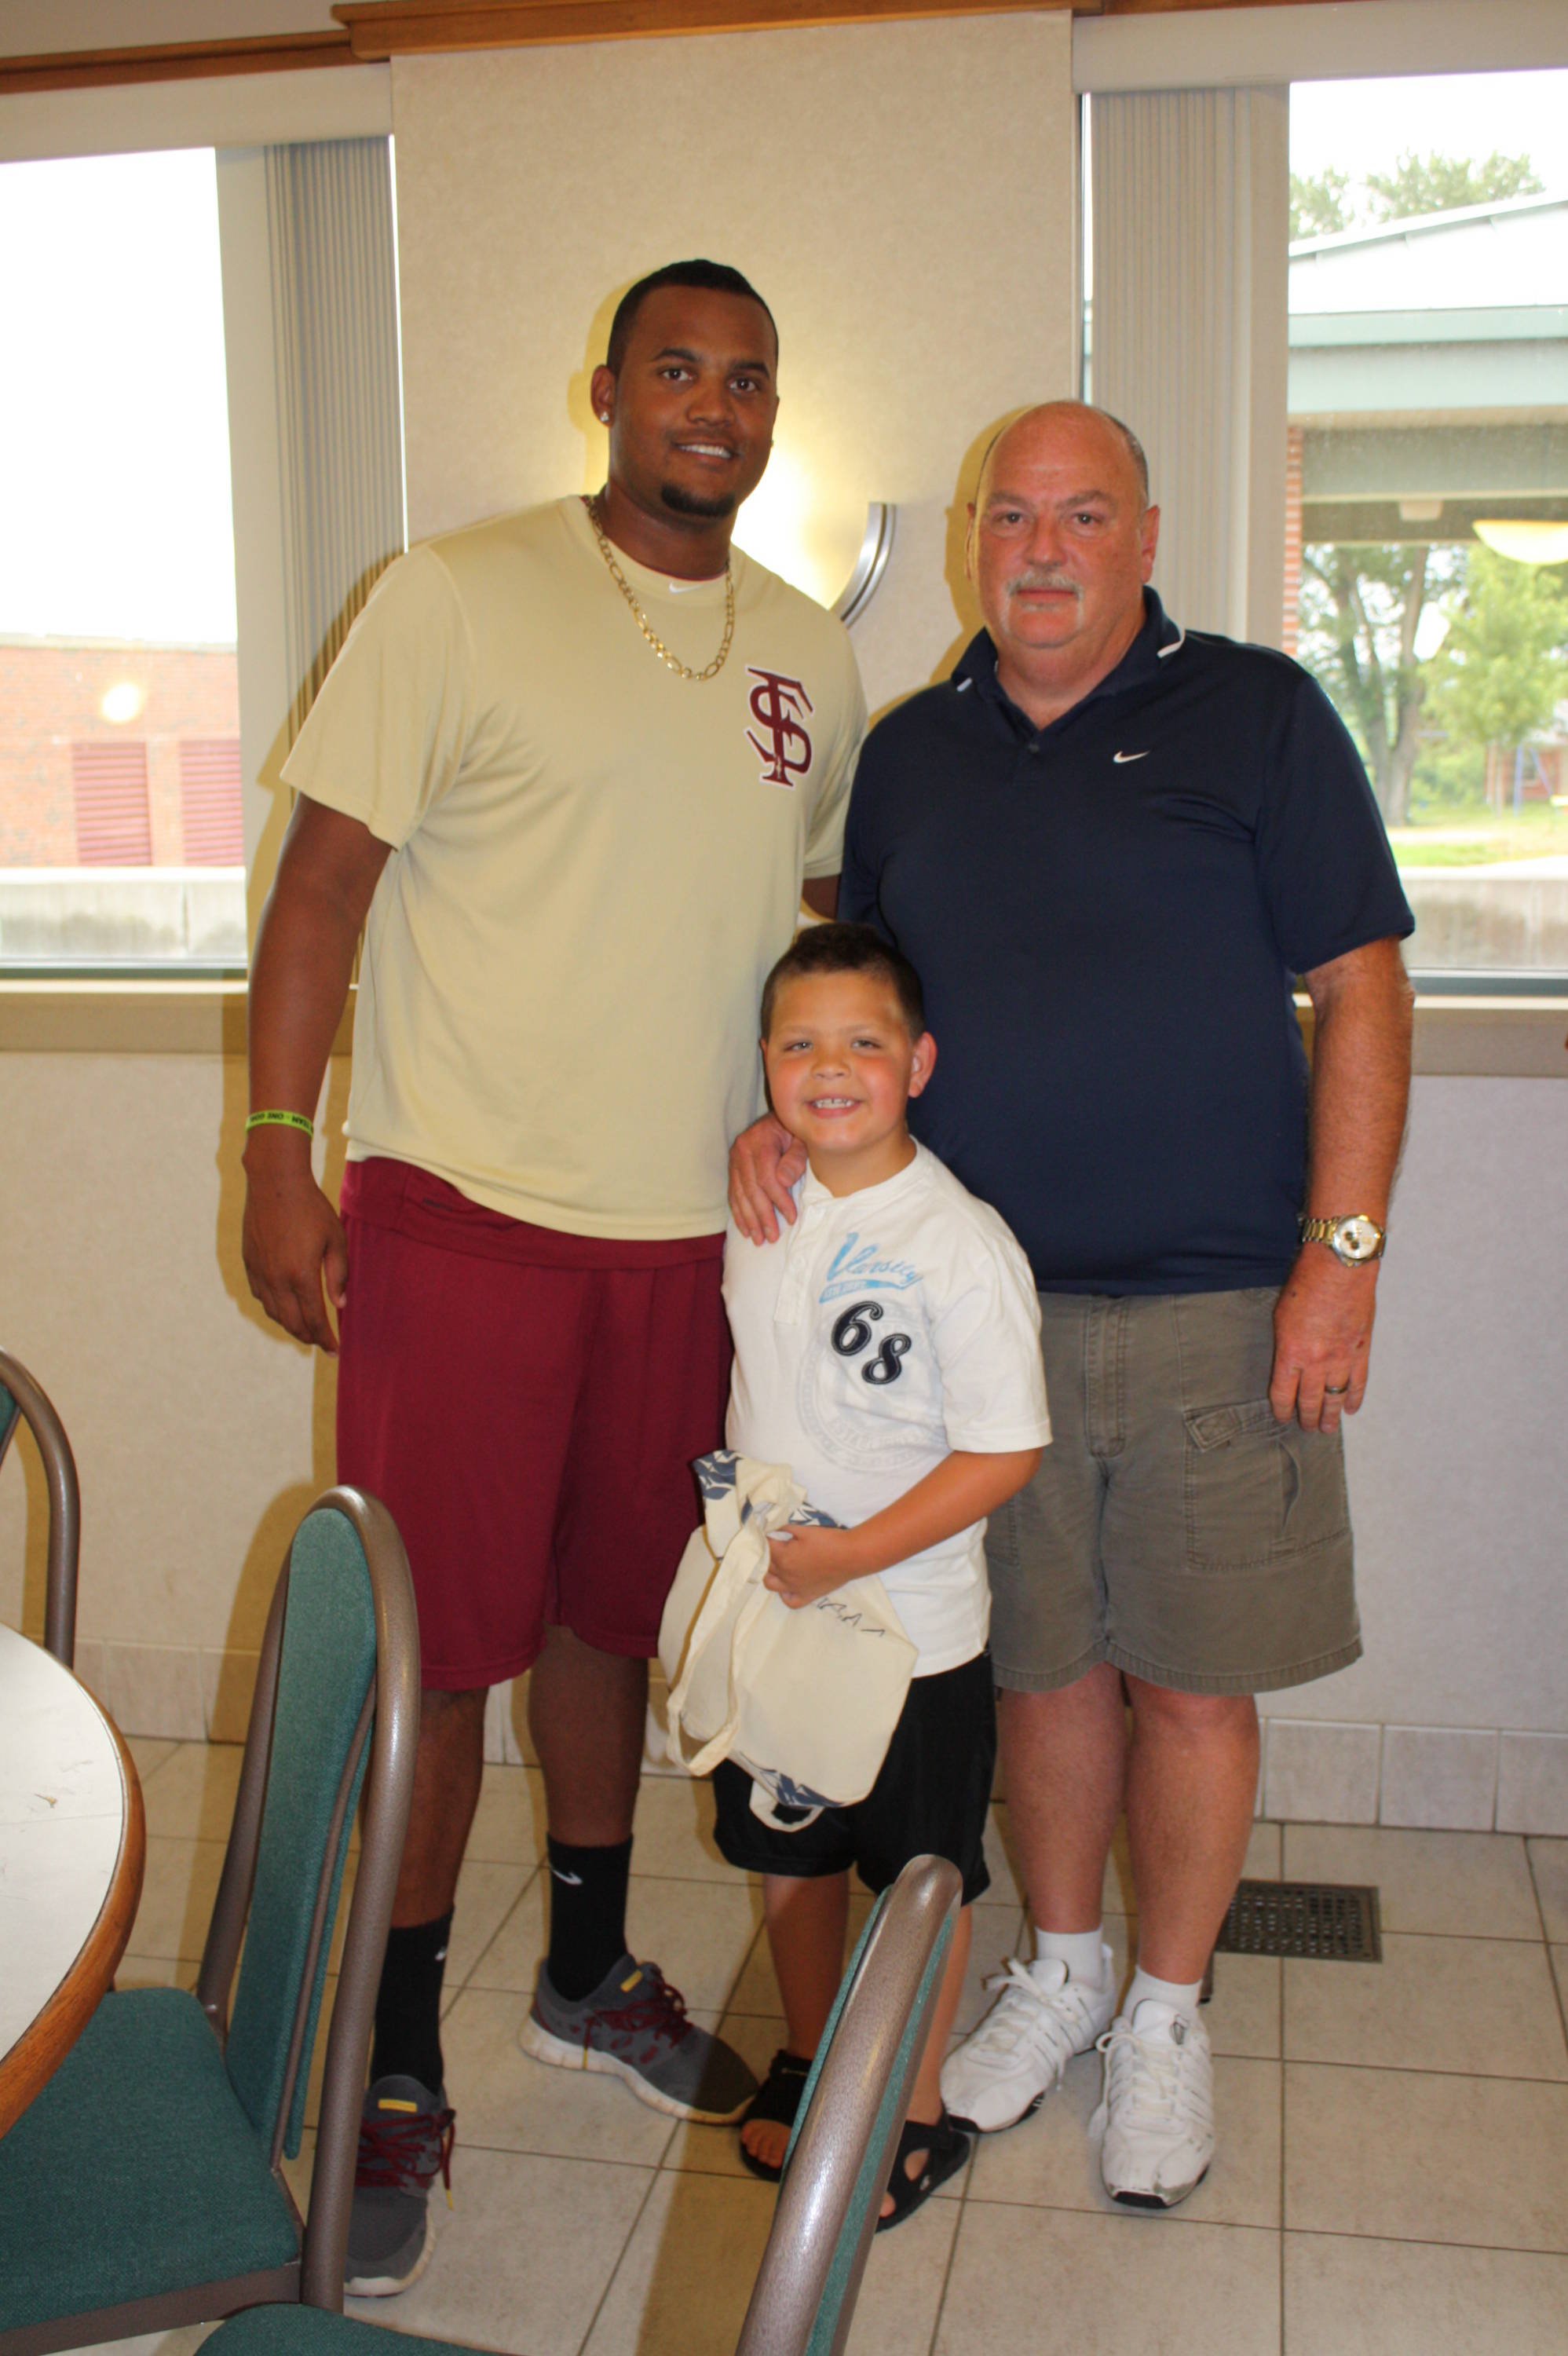 Florida State Baseball visits the Omaha Home for Boys on Saturday, June 16.